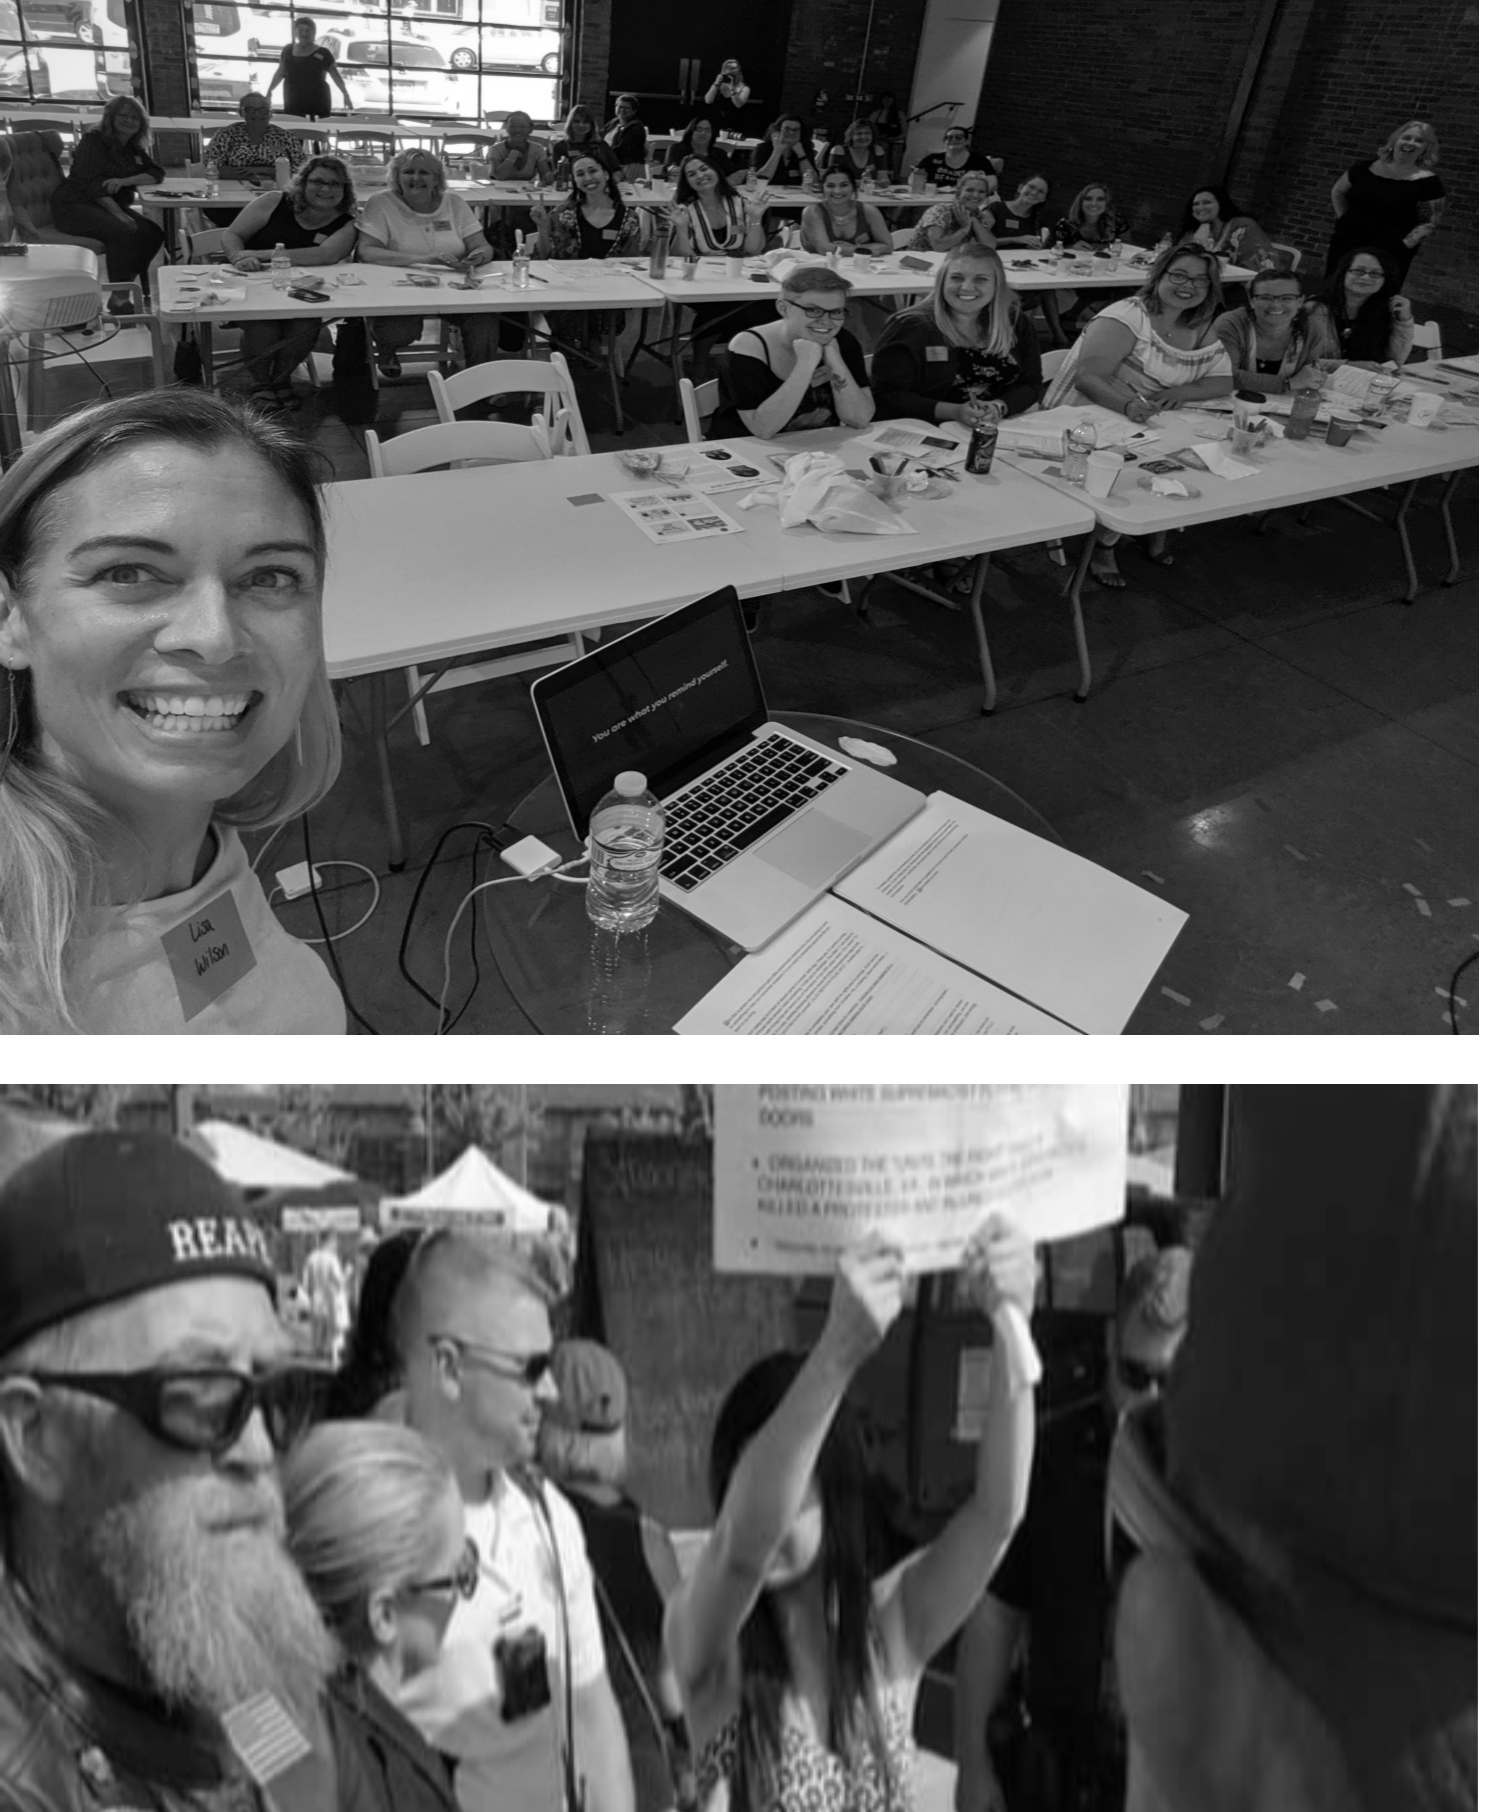 Top image: Selfie taken at the conclusion of my SPARK presentation this past weekend.  Bottom image: Photo taken a few blocks away, around the same time as the top photo. at the local Farmers Market, during a protest and subsequent arrest.